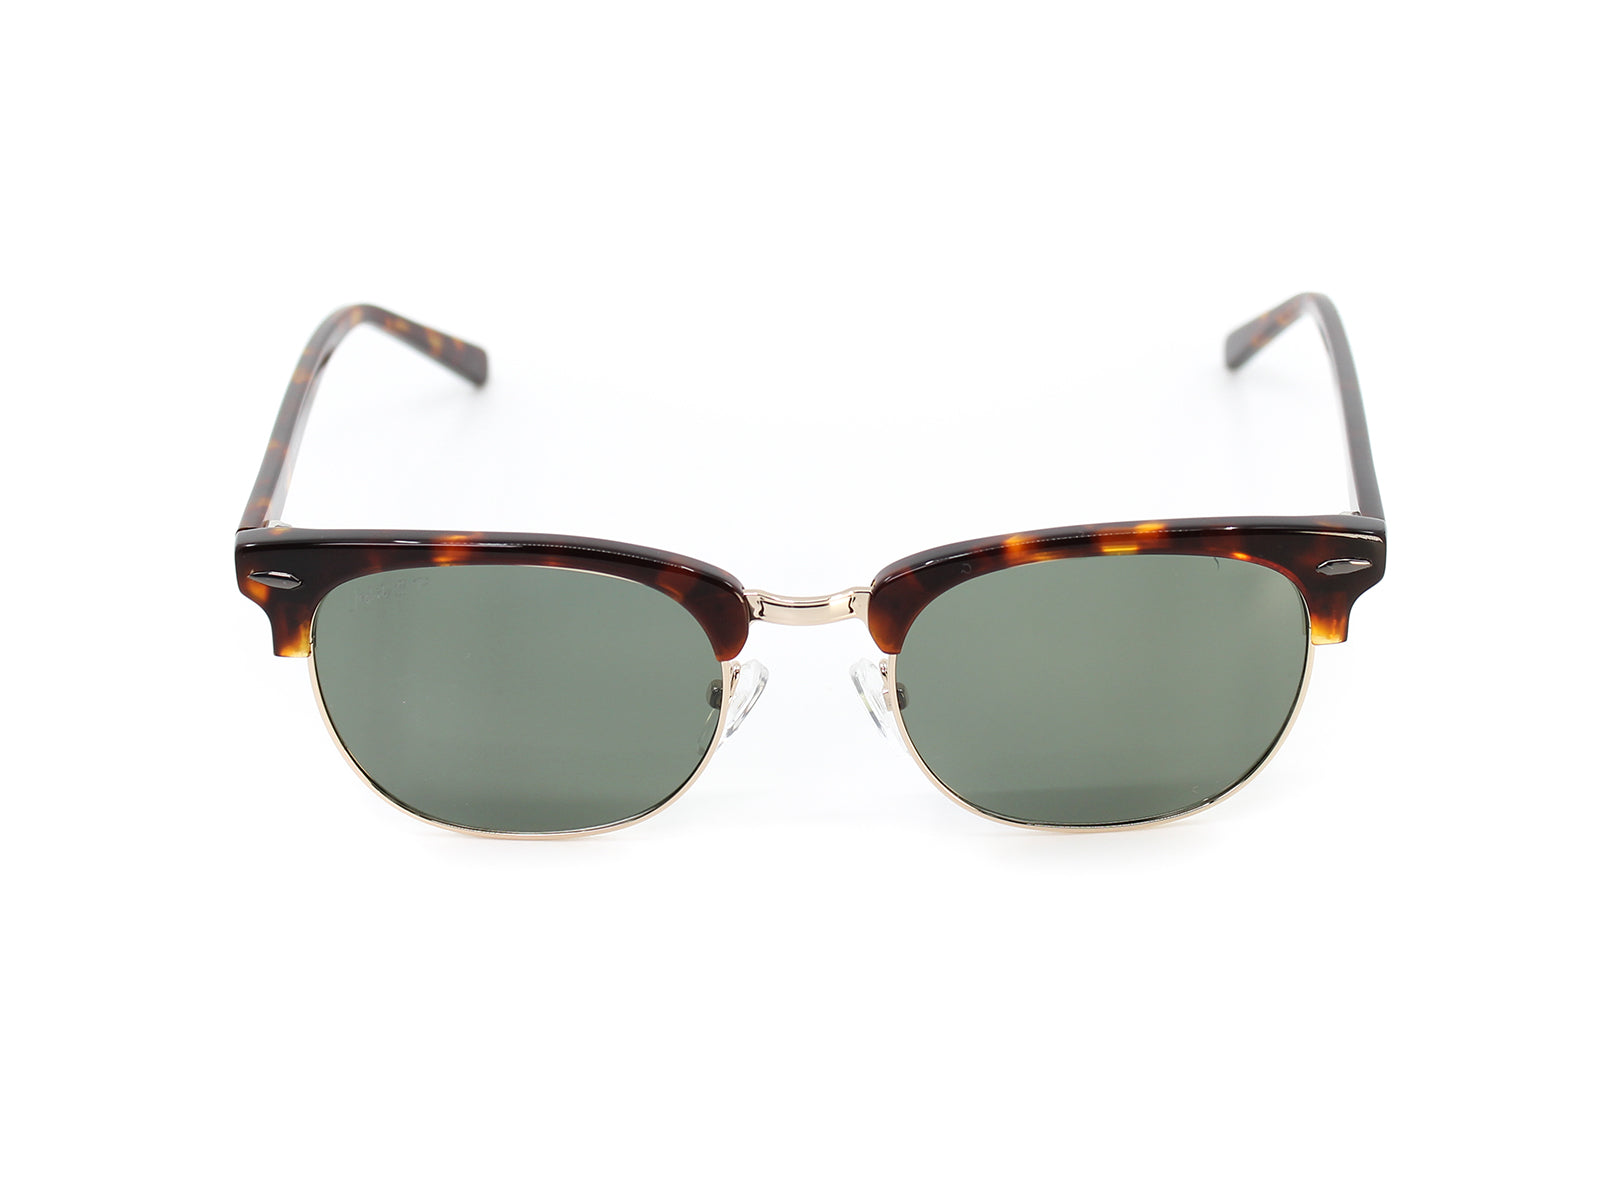 Monuments - Lexingtons: Glossy Tortoise & G15 Polarized